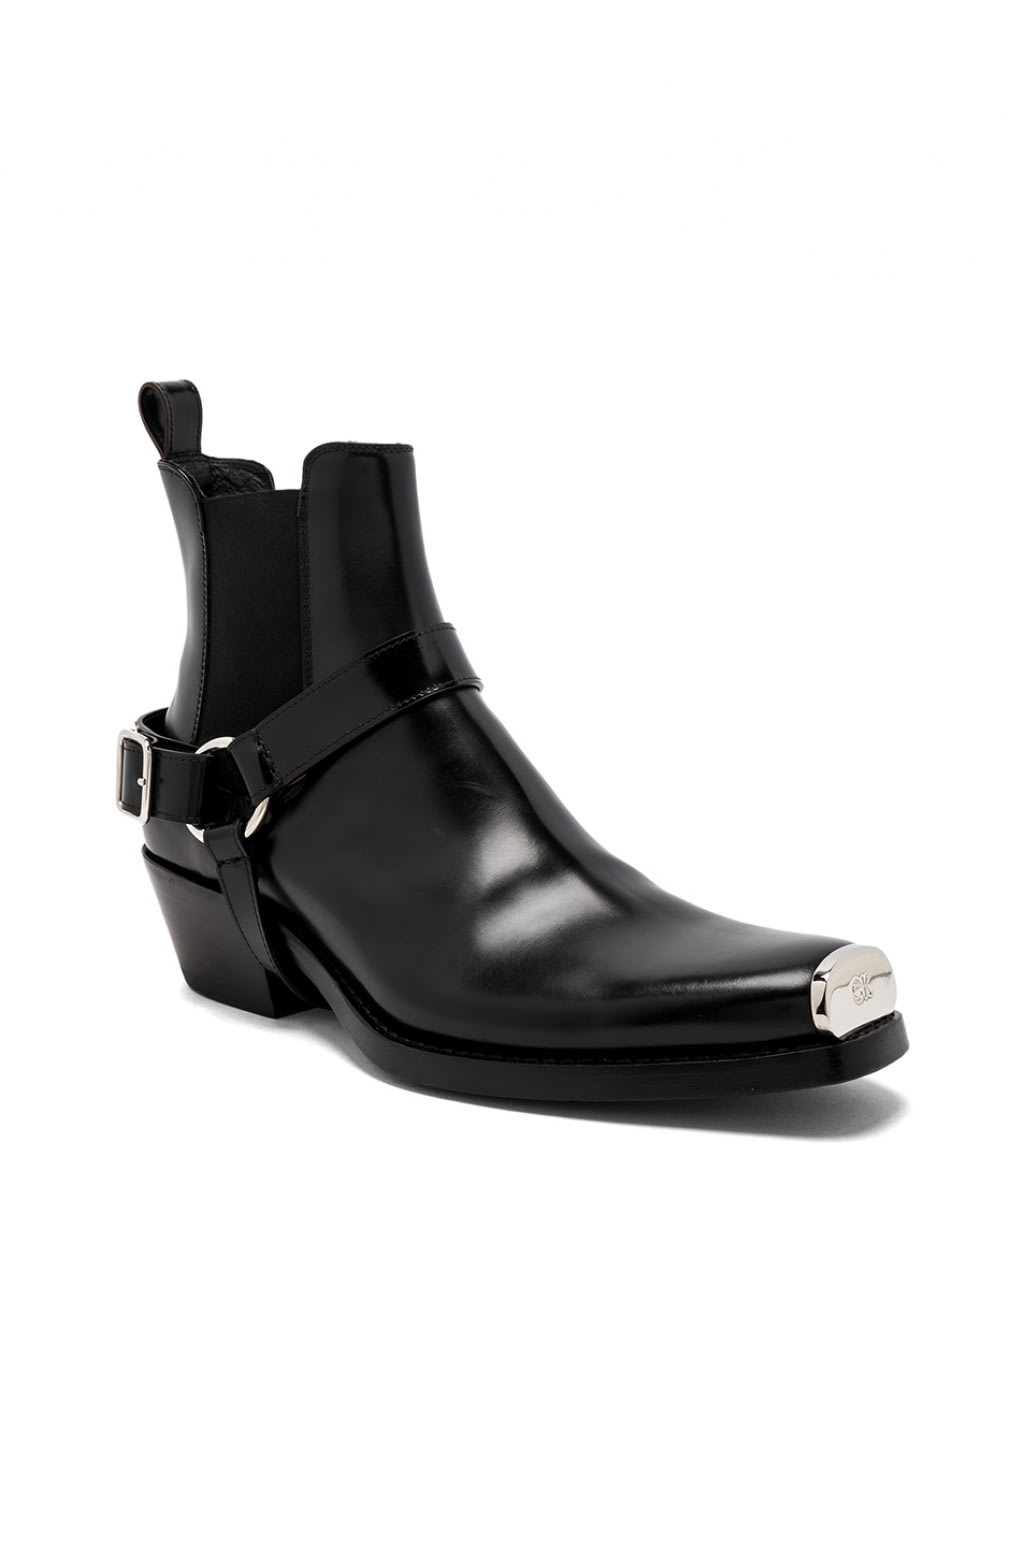 Buy Original Calvin Klein 205w39nyc Leather Western Harness Boots At Maxi Seal